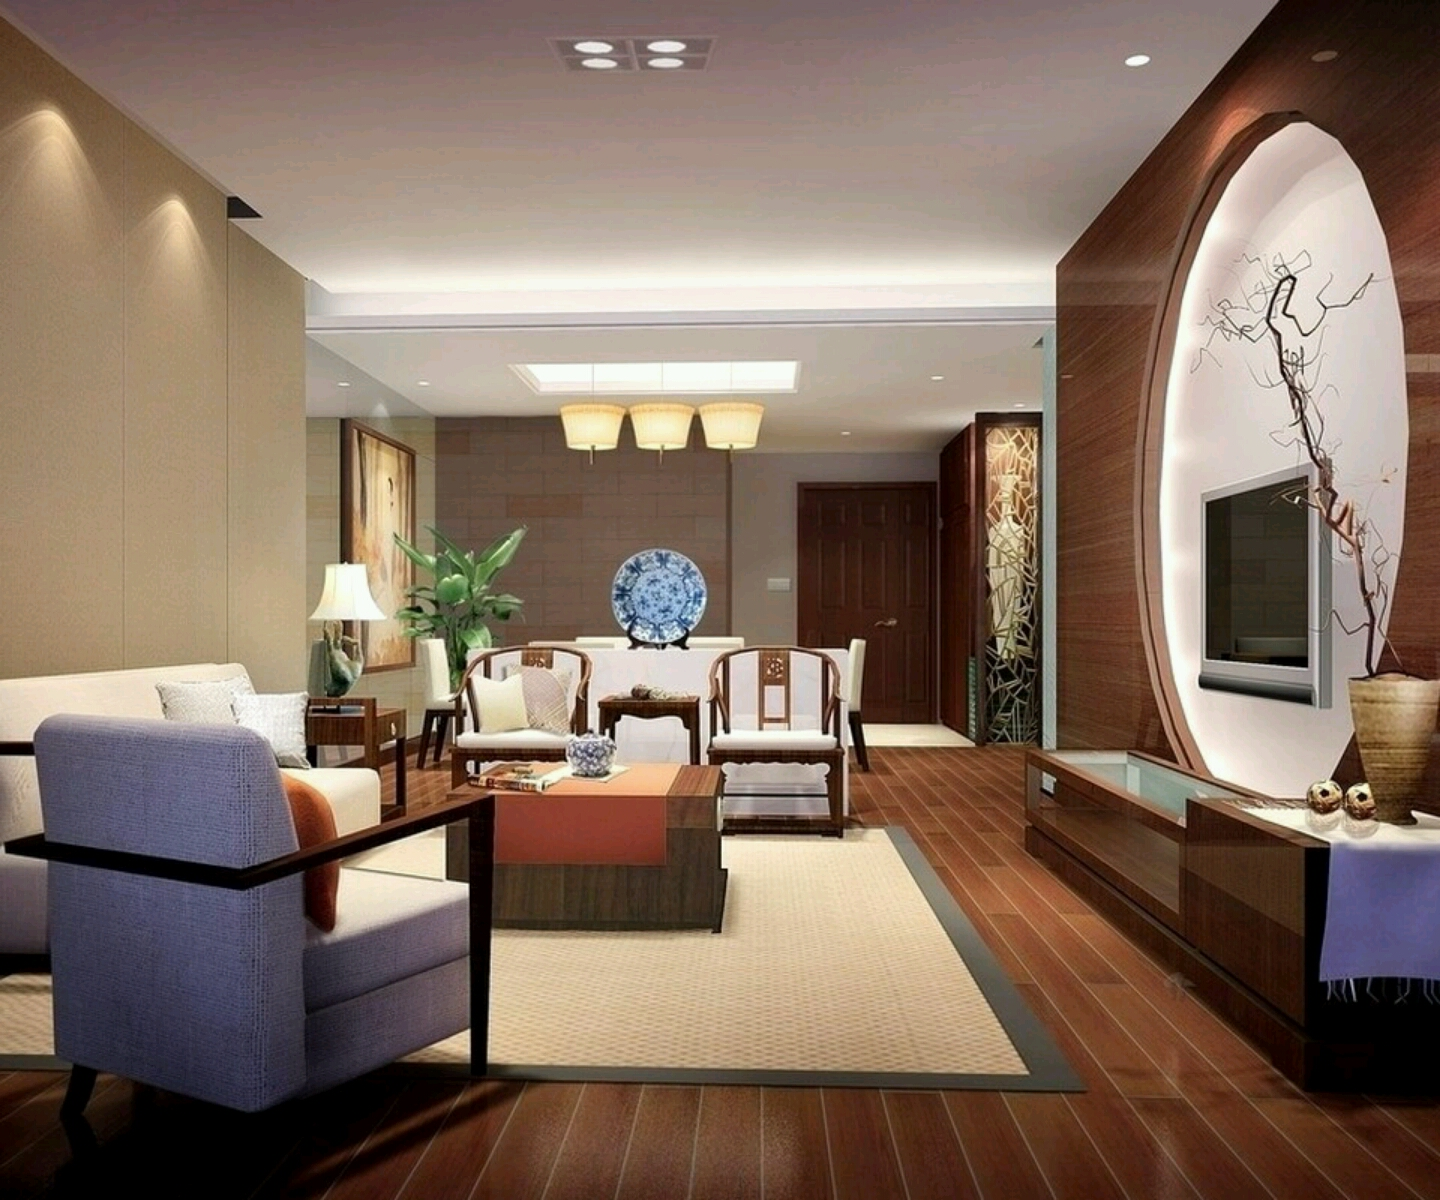 Luxury homes interior decoration living room designs ideas for House living room designs